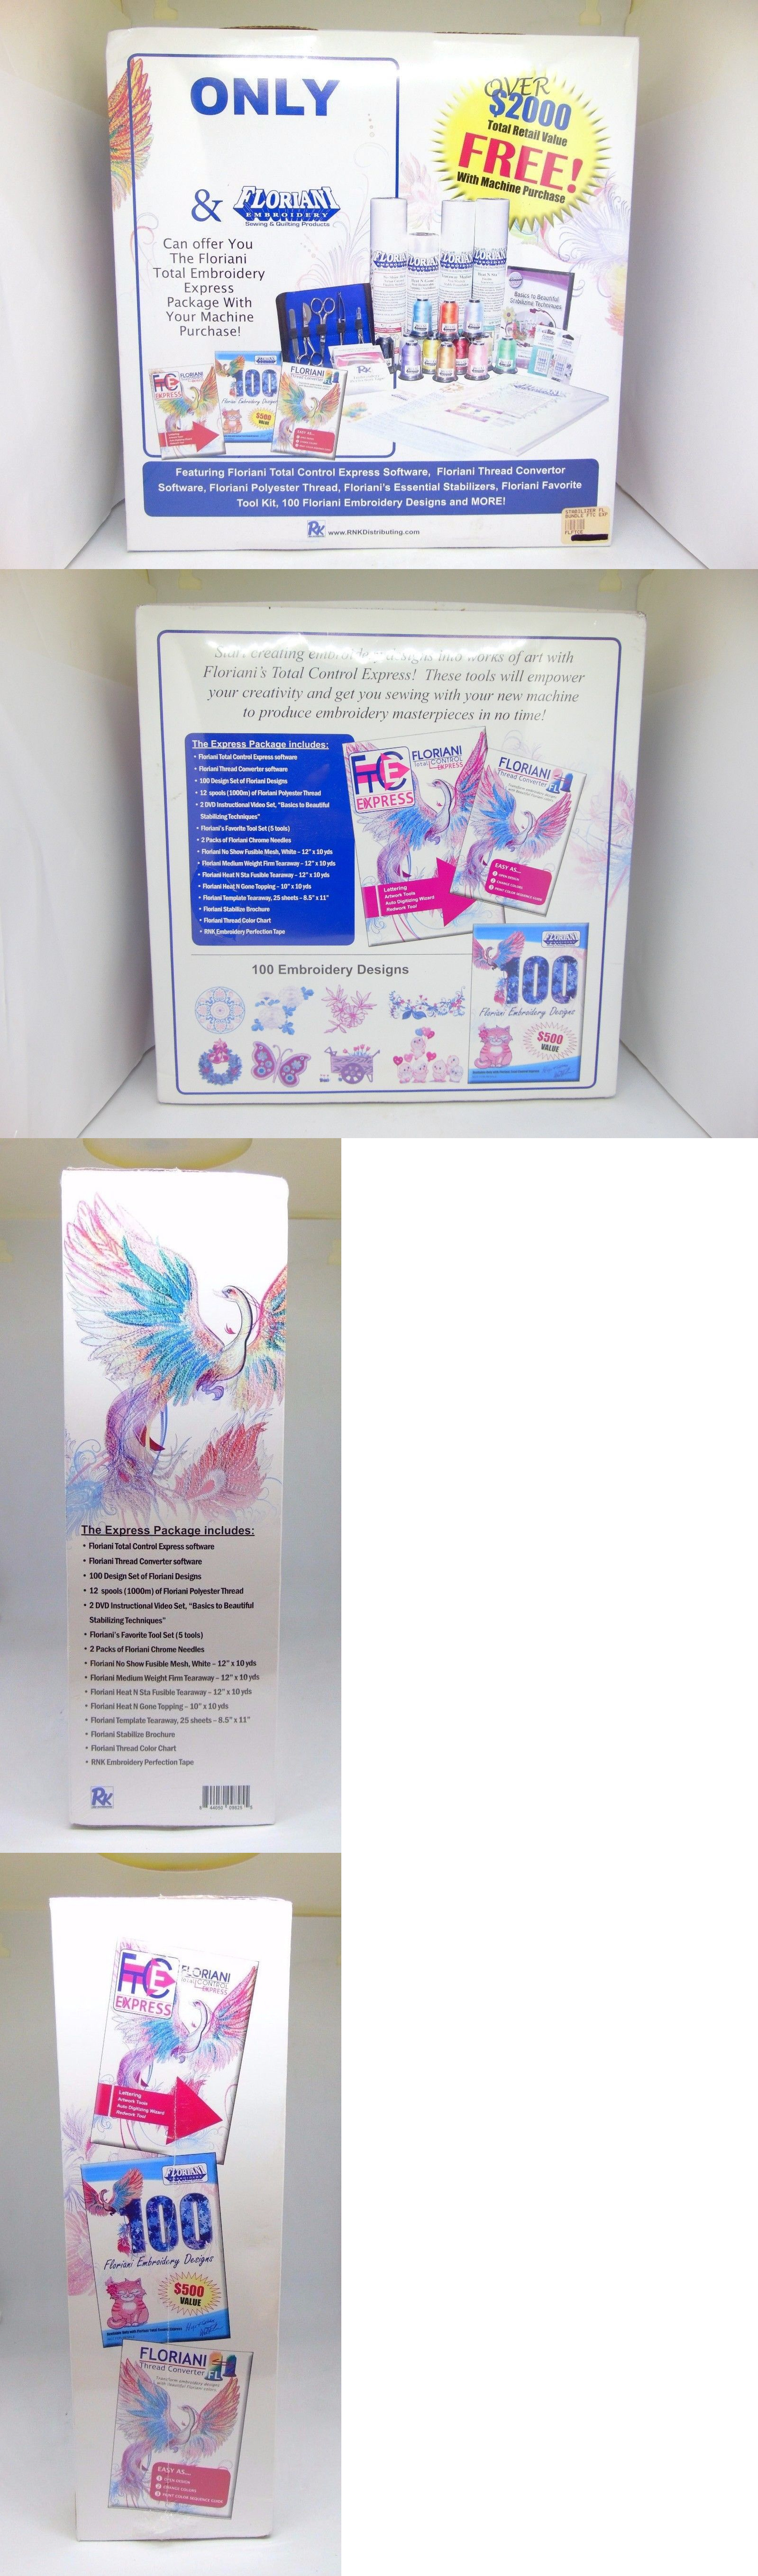 Digitizing Software 71197 Floriani Total Embroidery Express